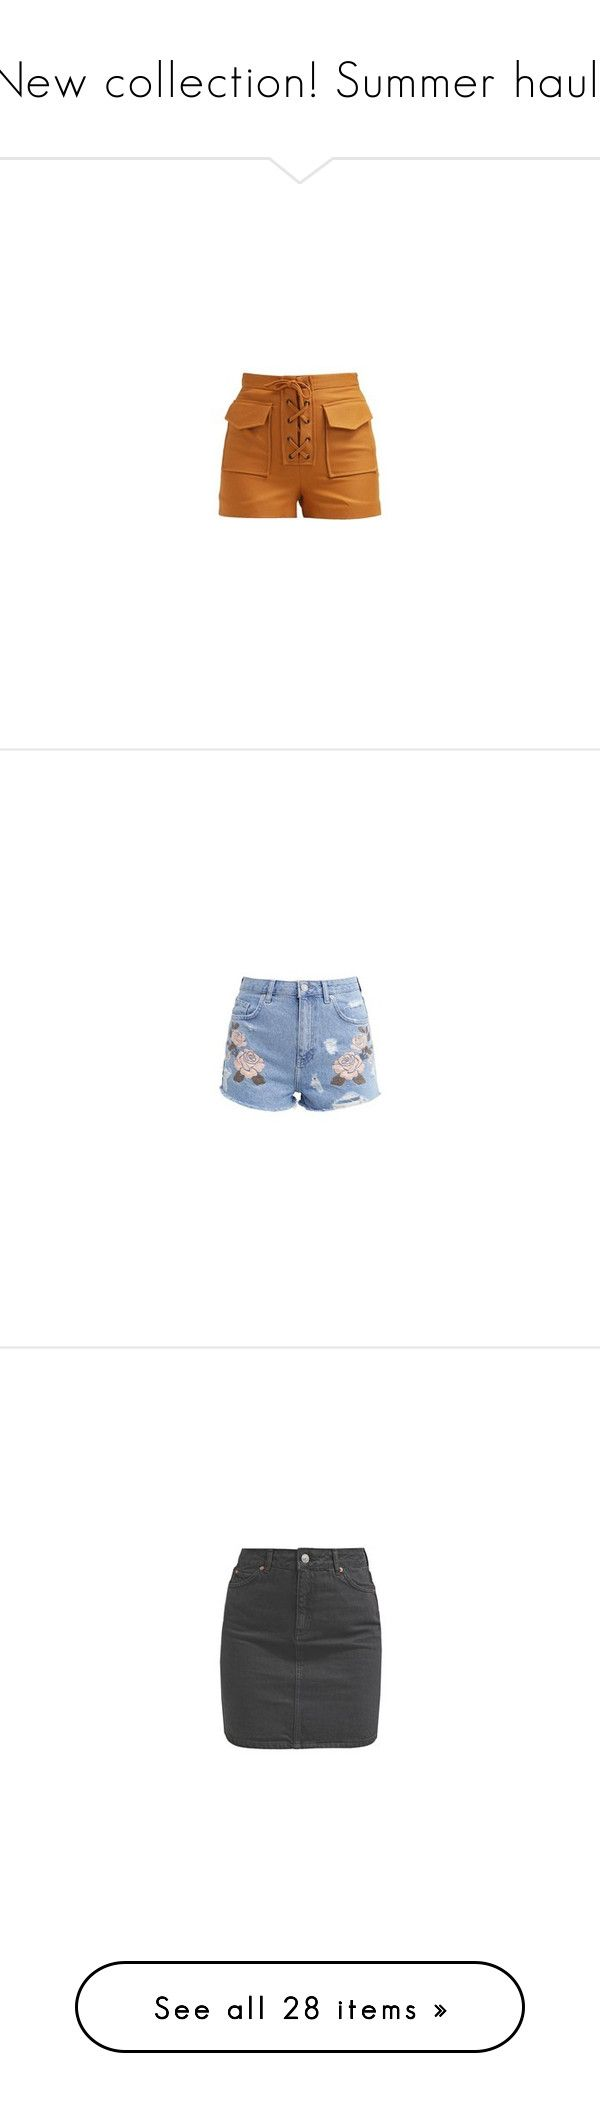 """""""New collection! Summer haul!"""" by itgirlcarlota ❤ liked on Polyvore featuring shoes, sandals, royal blue, open toe mules, high heel shoes, open-toe mules, high heel mule sandals, suede shoes, dresses and grey"""